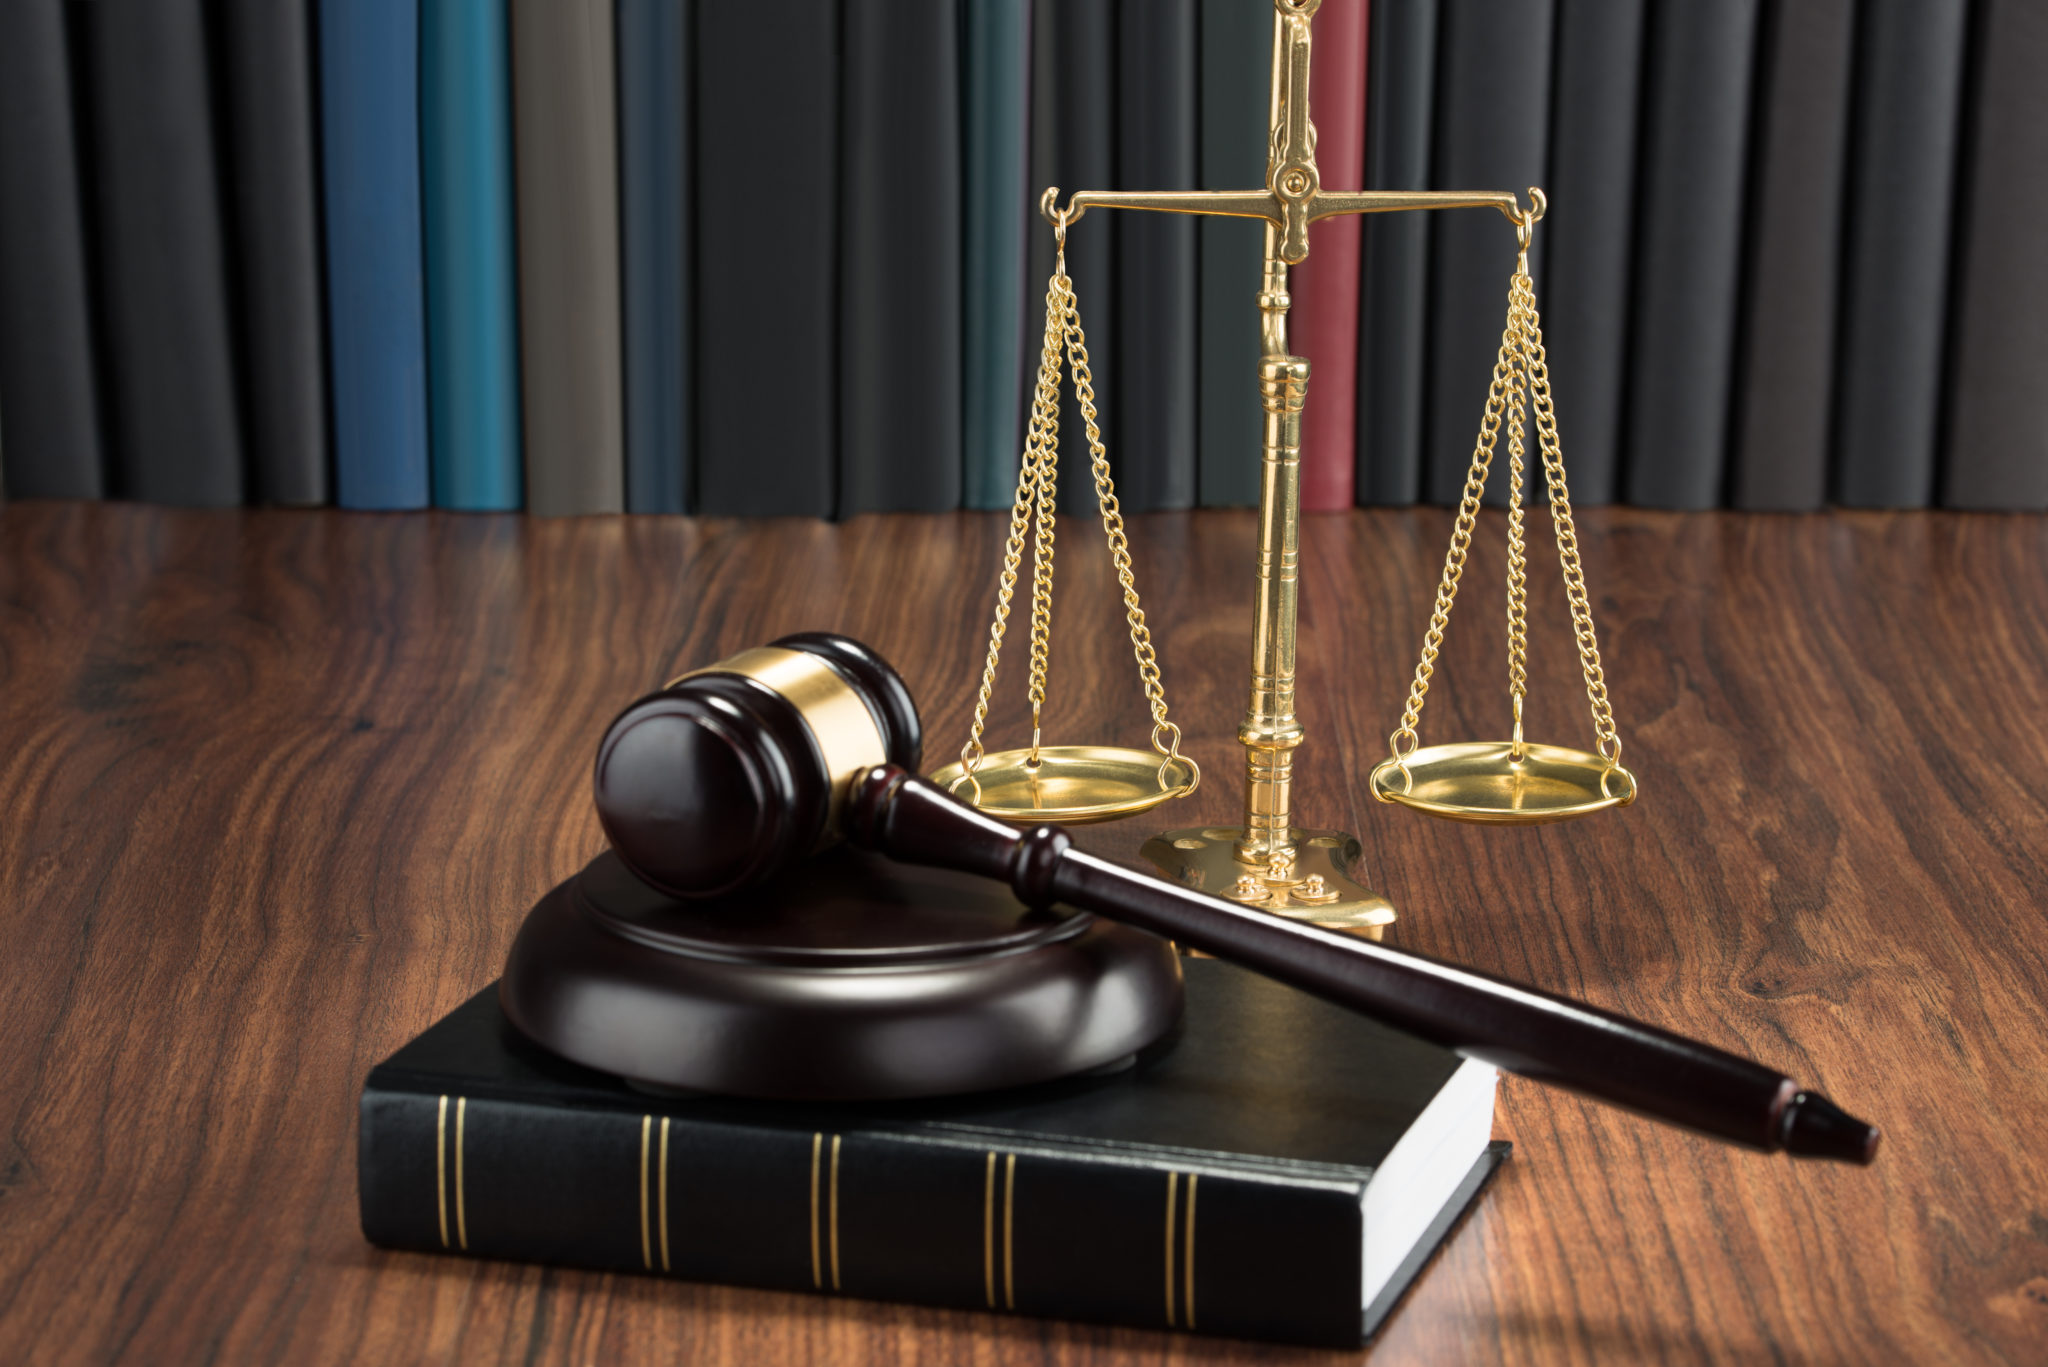 Ghana to host second Attorney General Alliance – Africa Conference